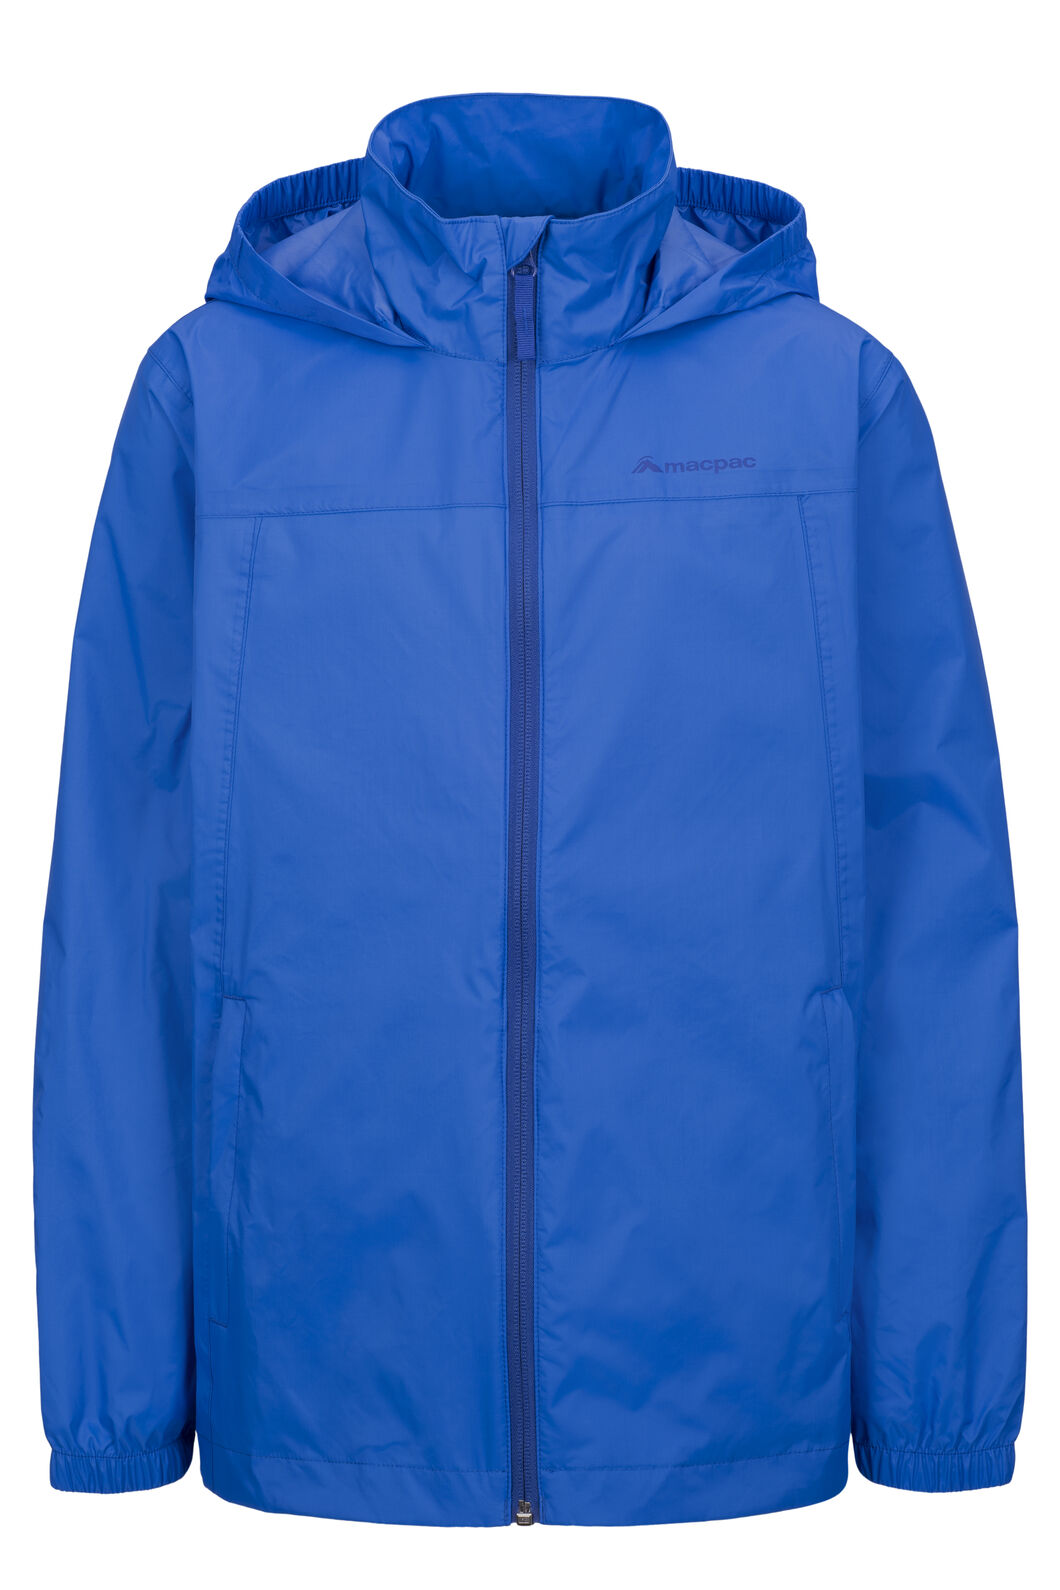 Macpac Pack-It-Jacket — Kids', Strong Blue, hi-res